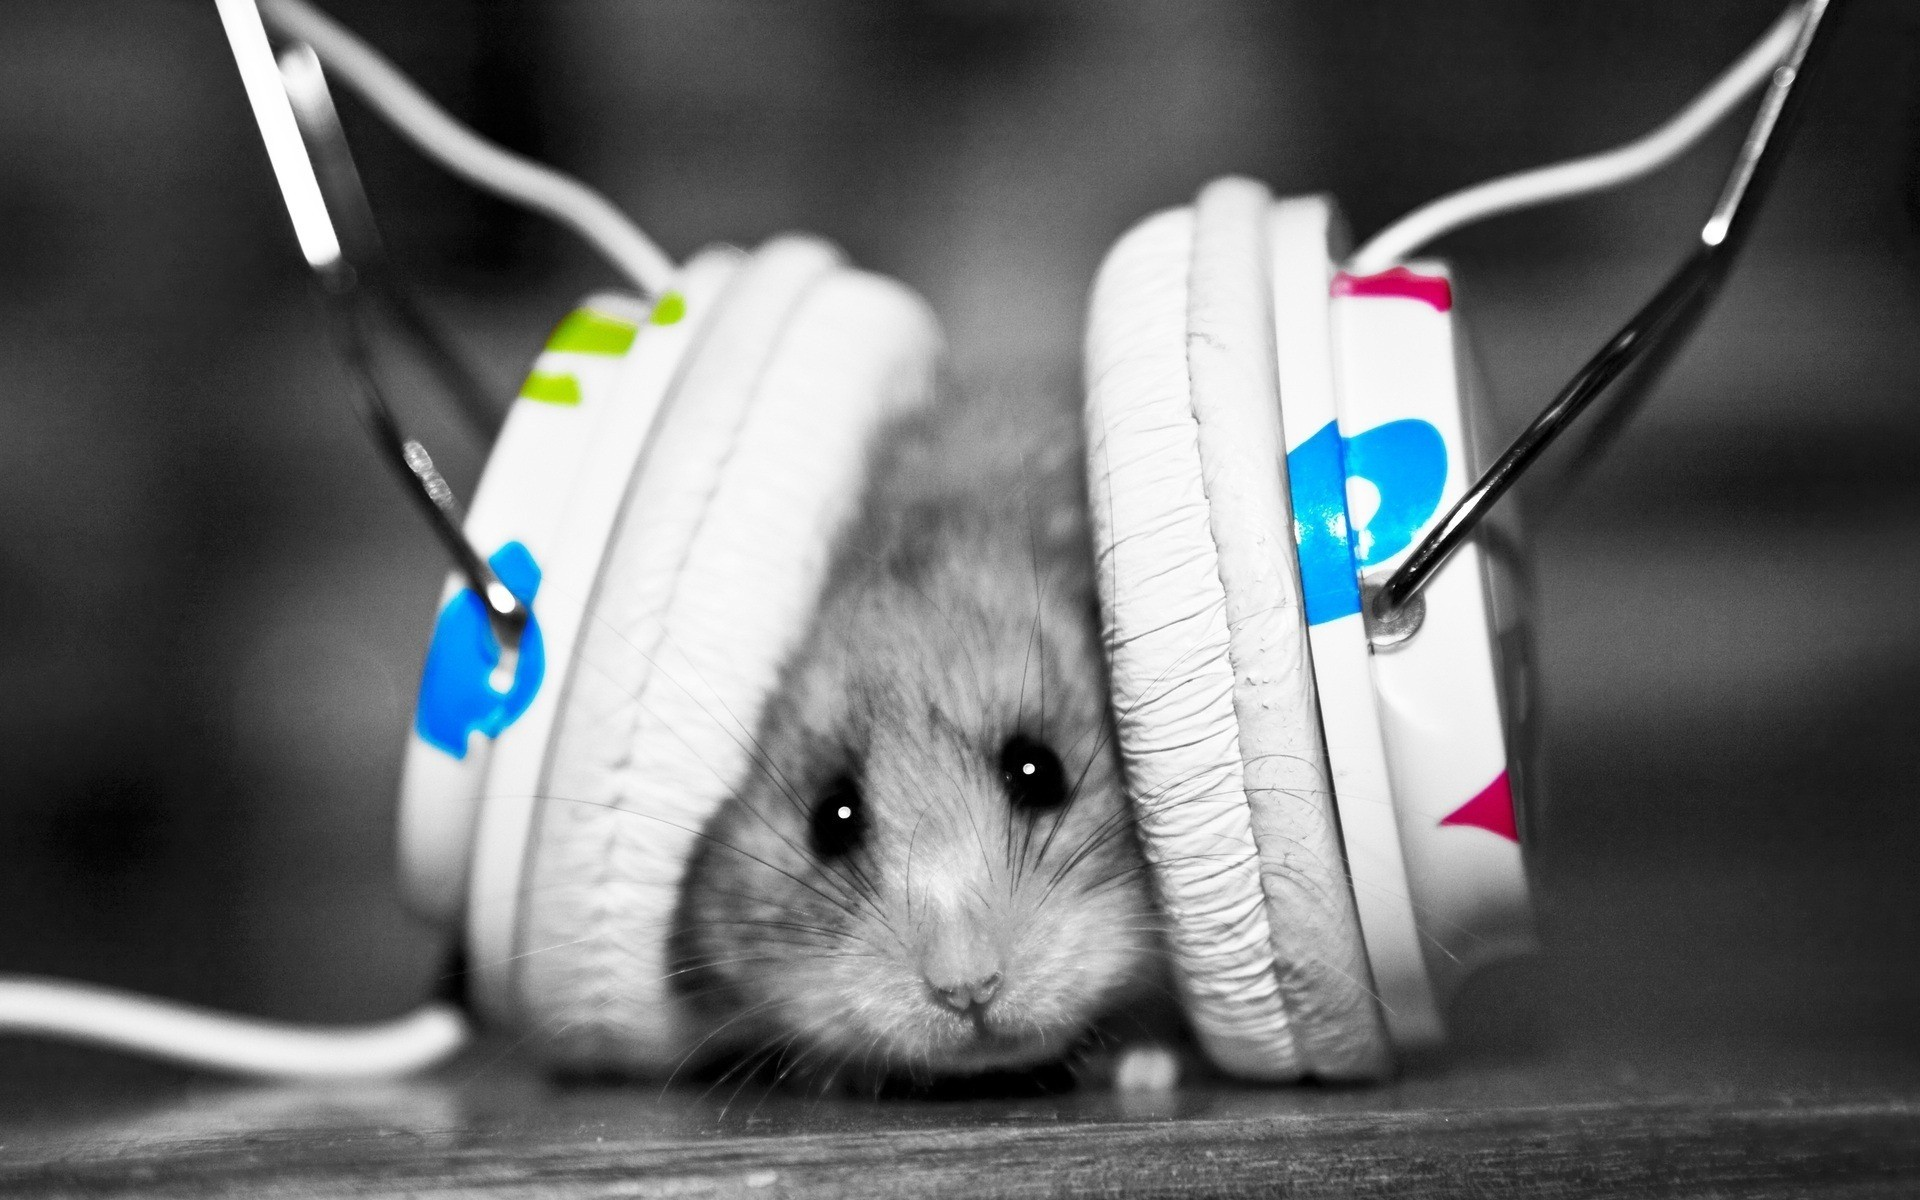 Mouse with headphone